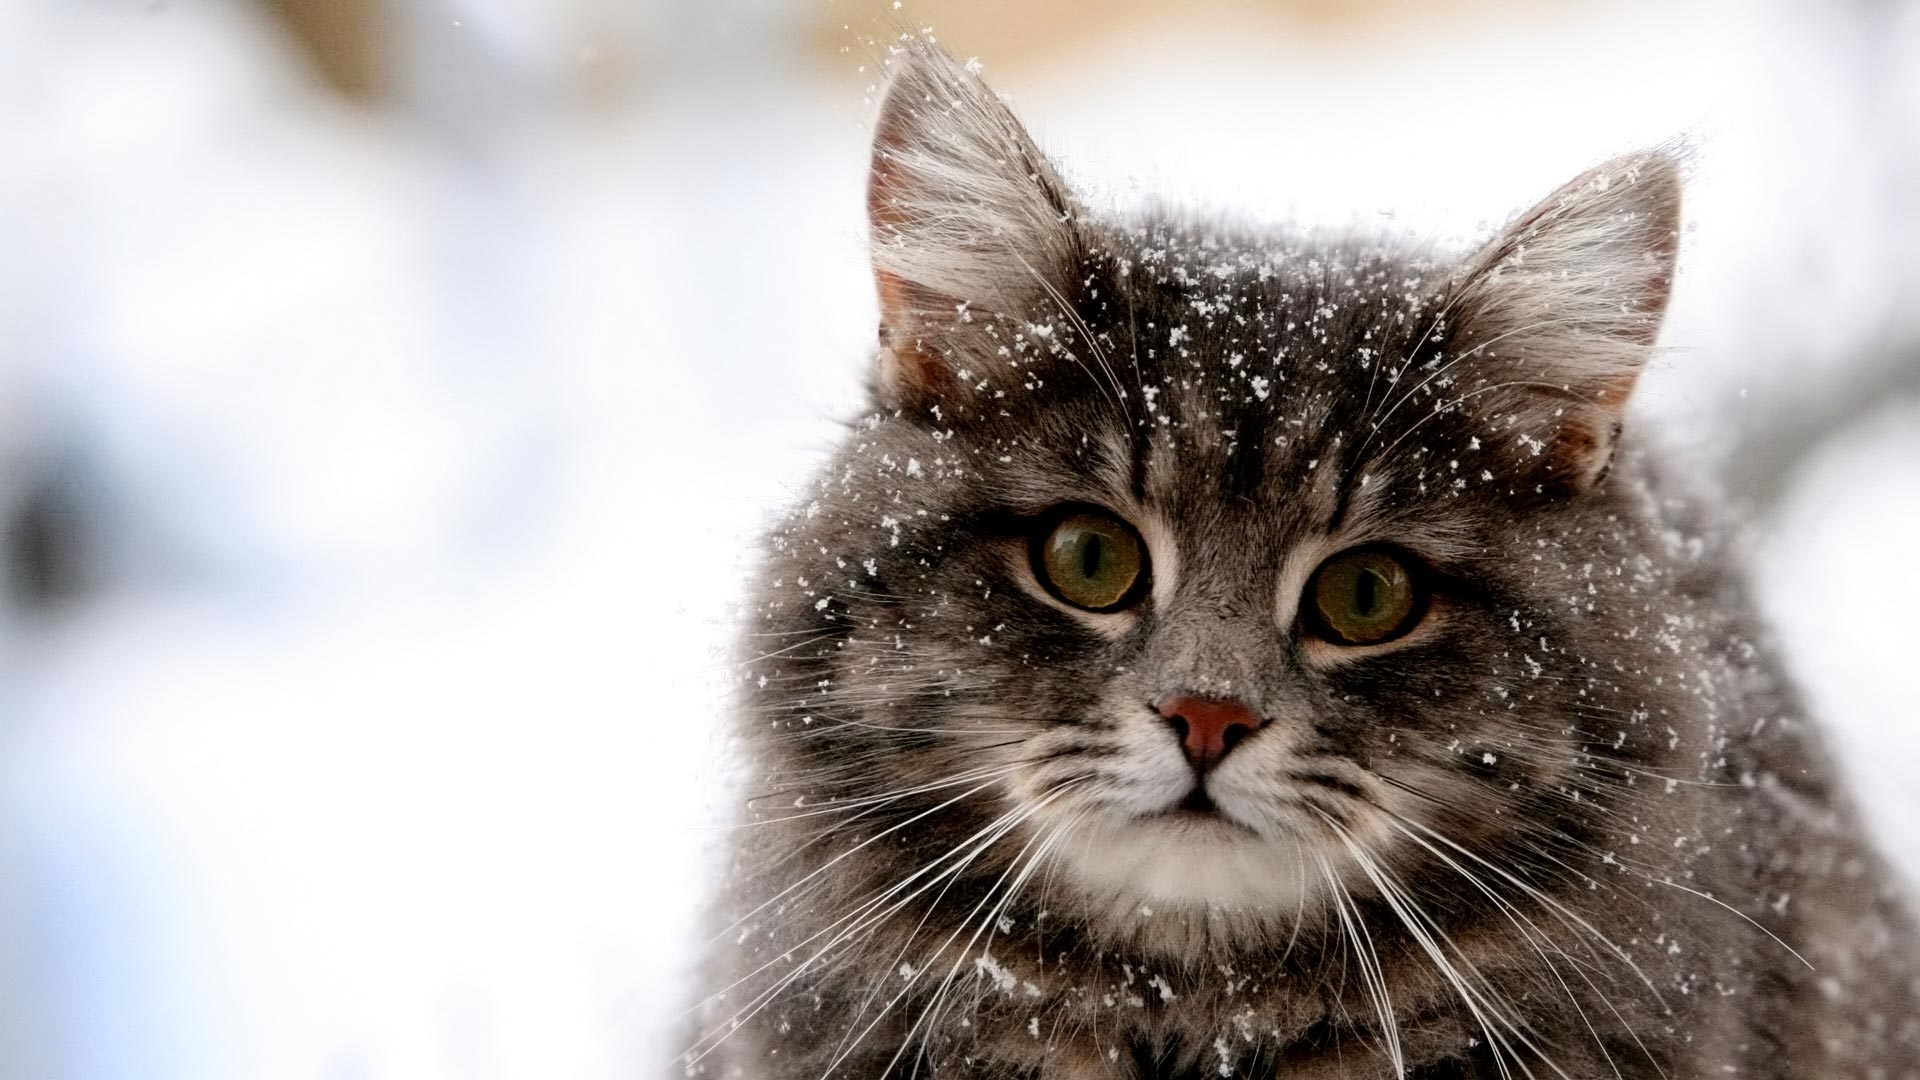 40303 download wallpaper Animals, Cats screensavers and pictures for free